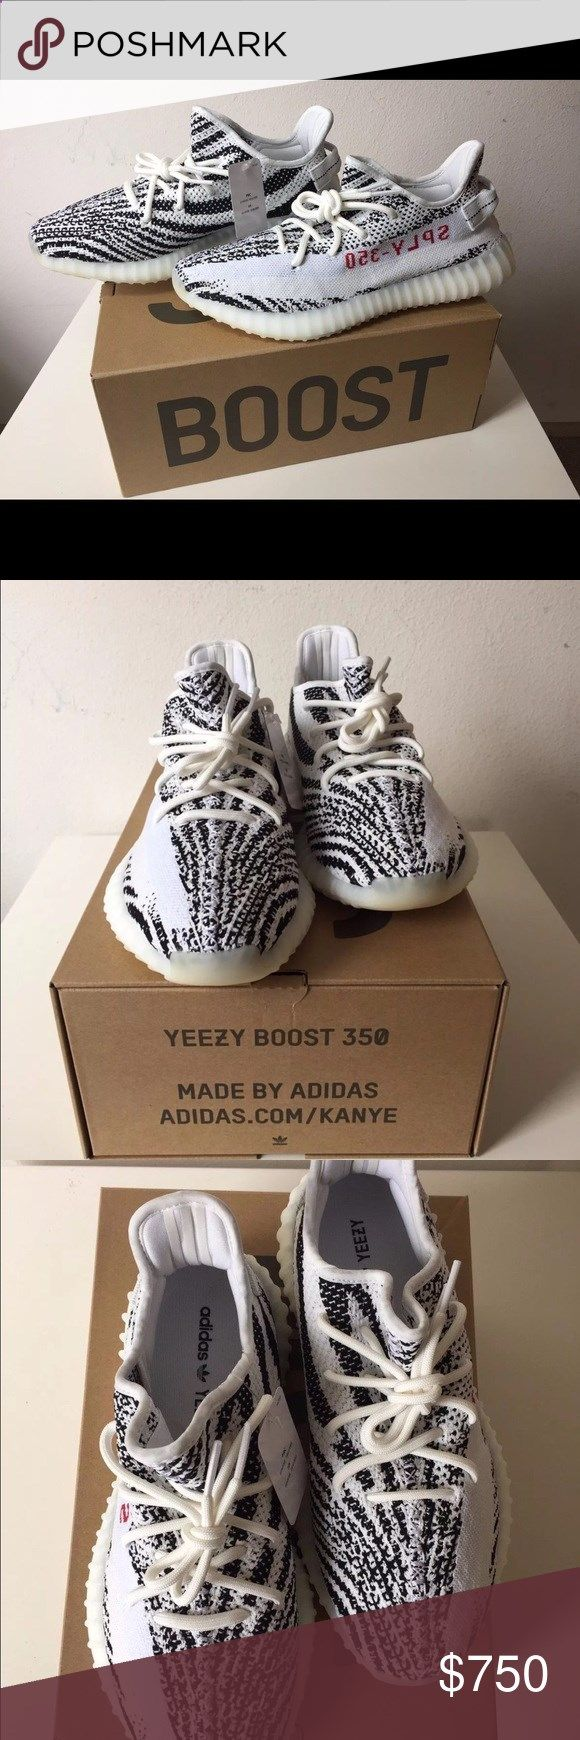 adidas superstar shoes adidas yeezy zebra price